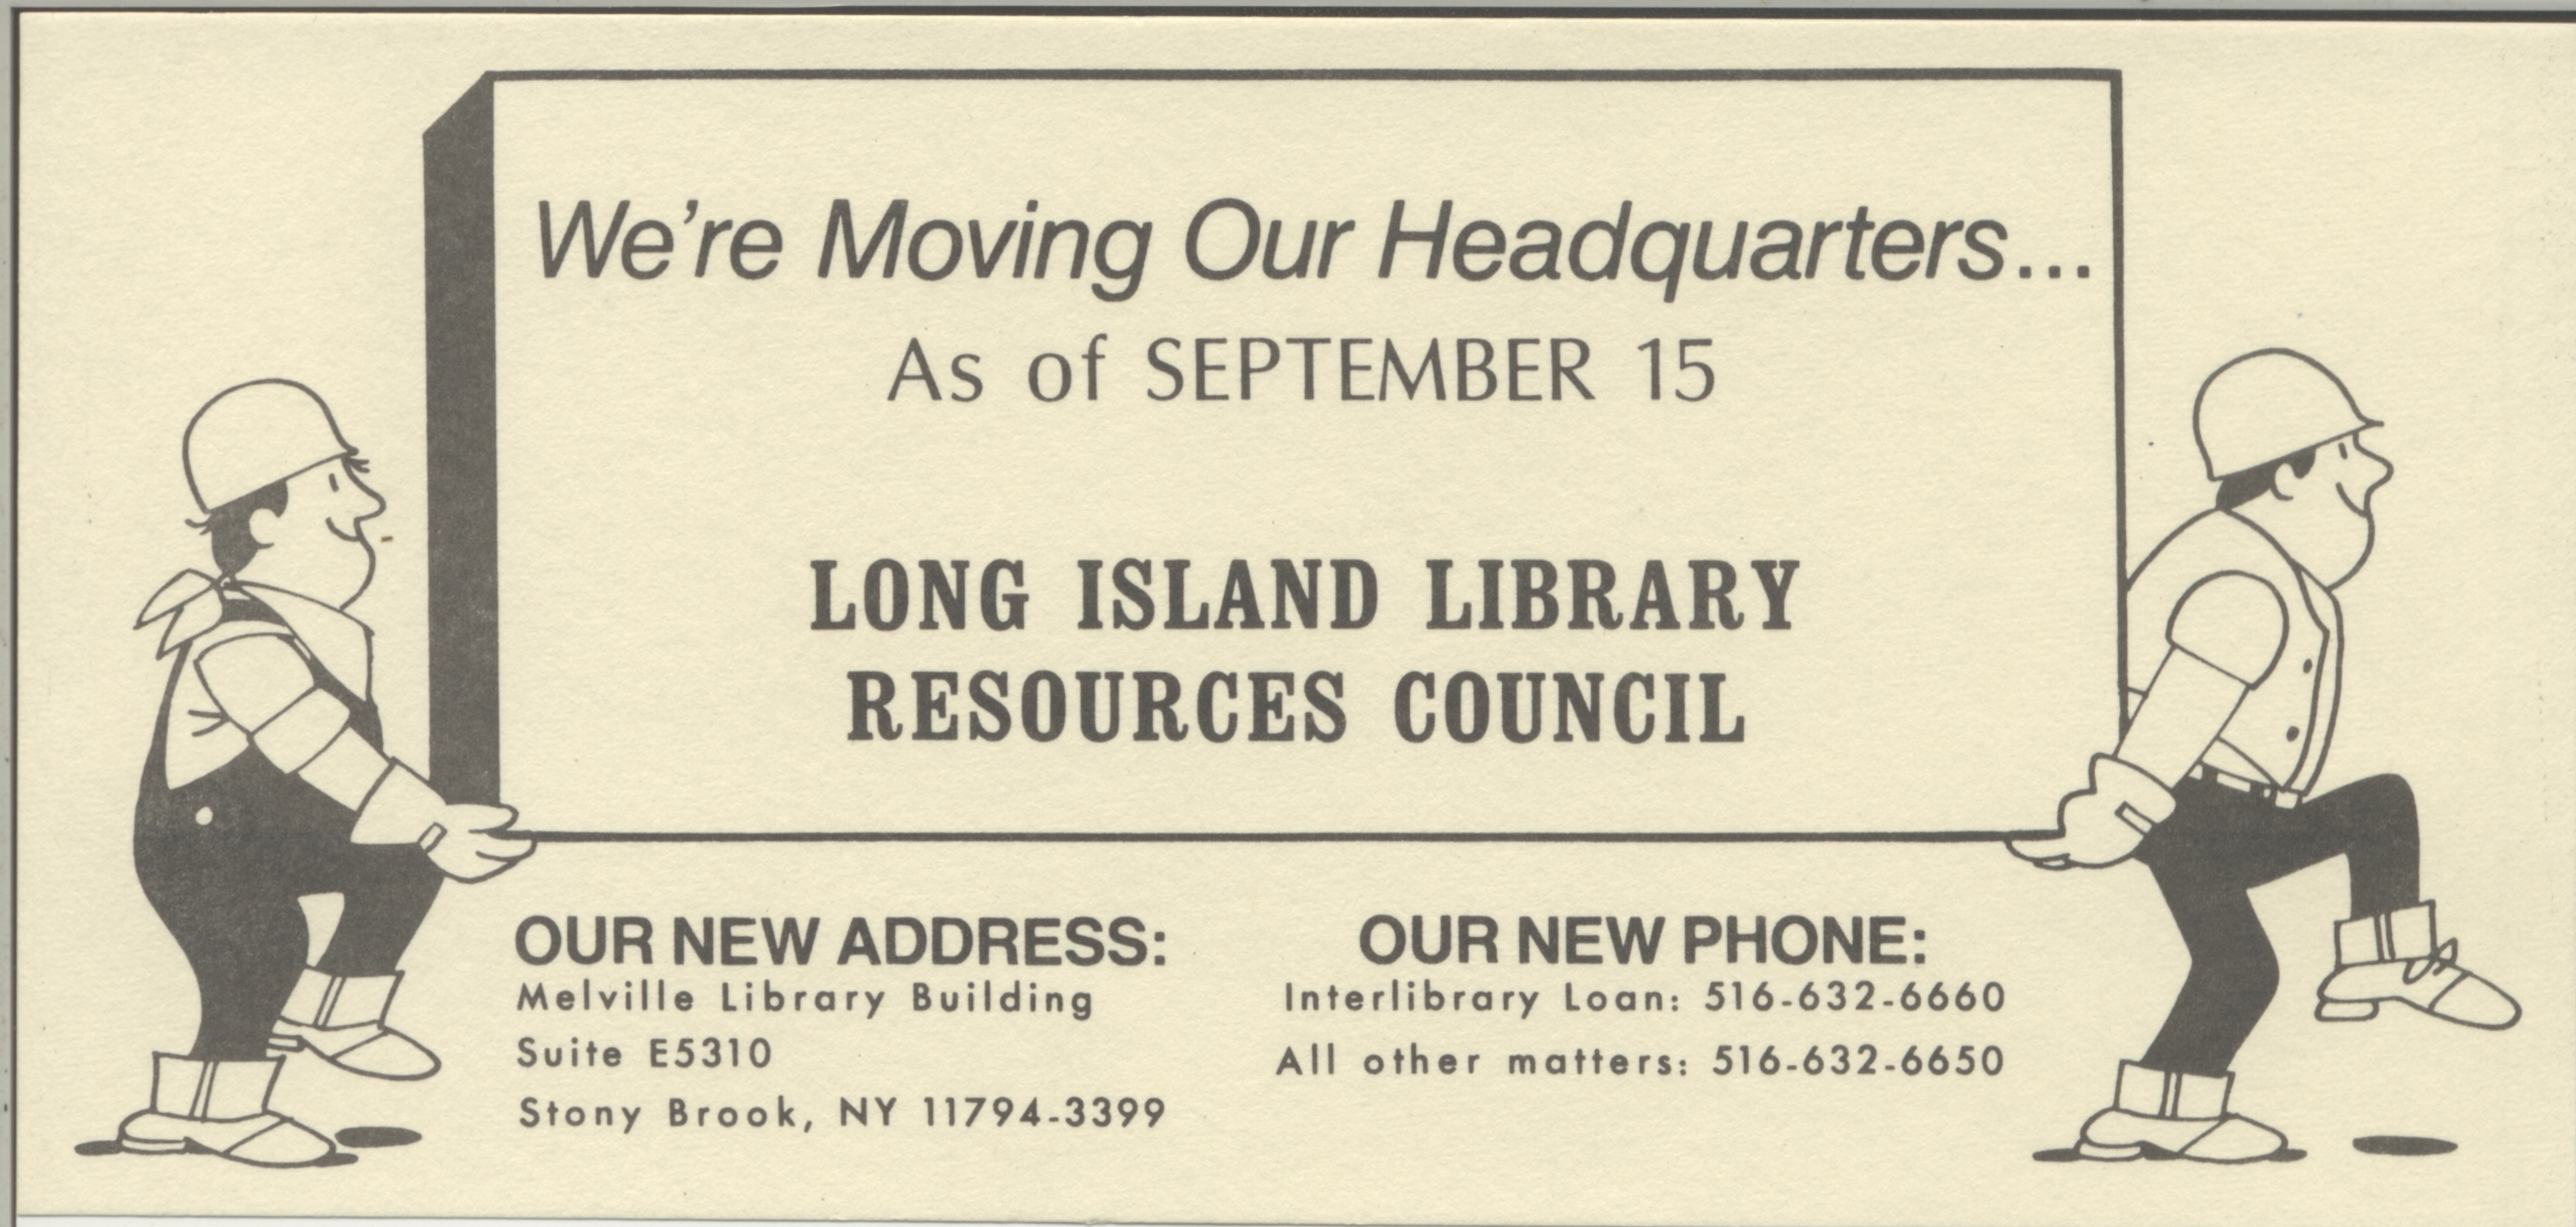 Were Moving Our Headquarters from previous LILRC move in 1986